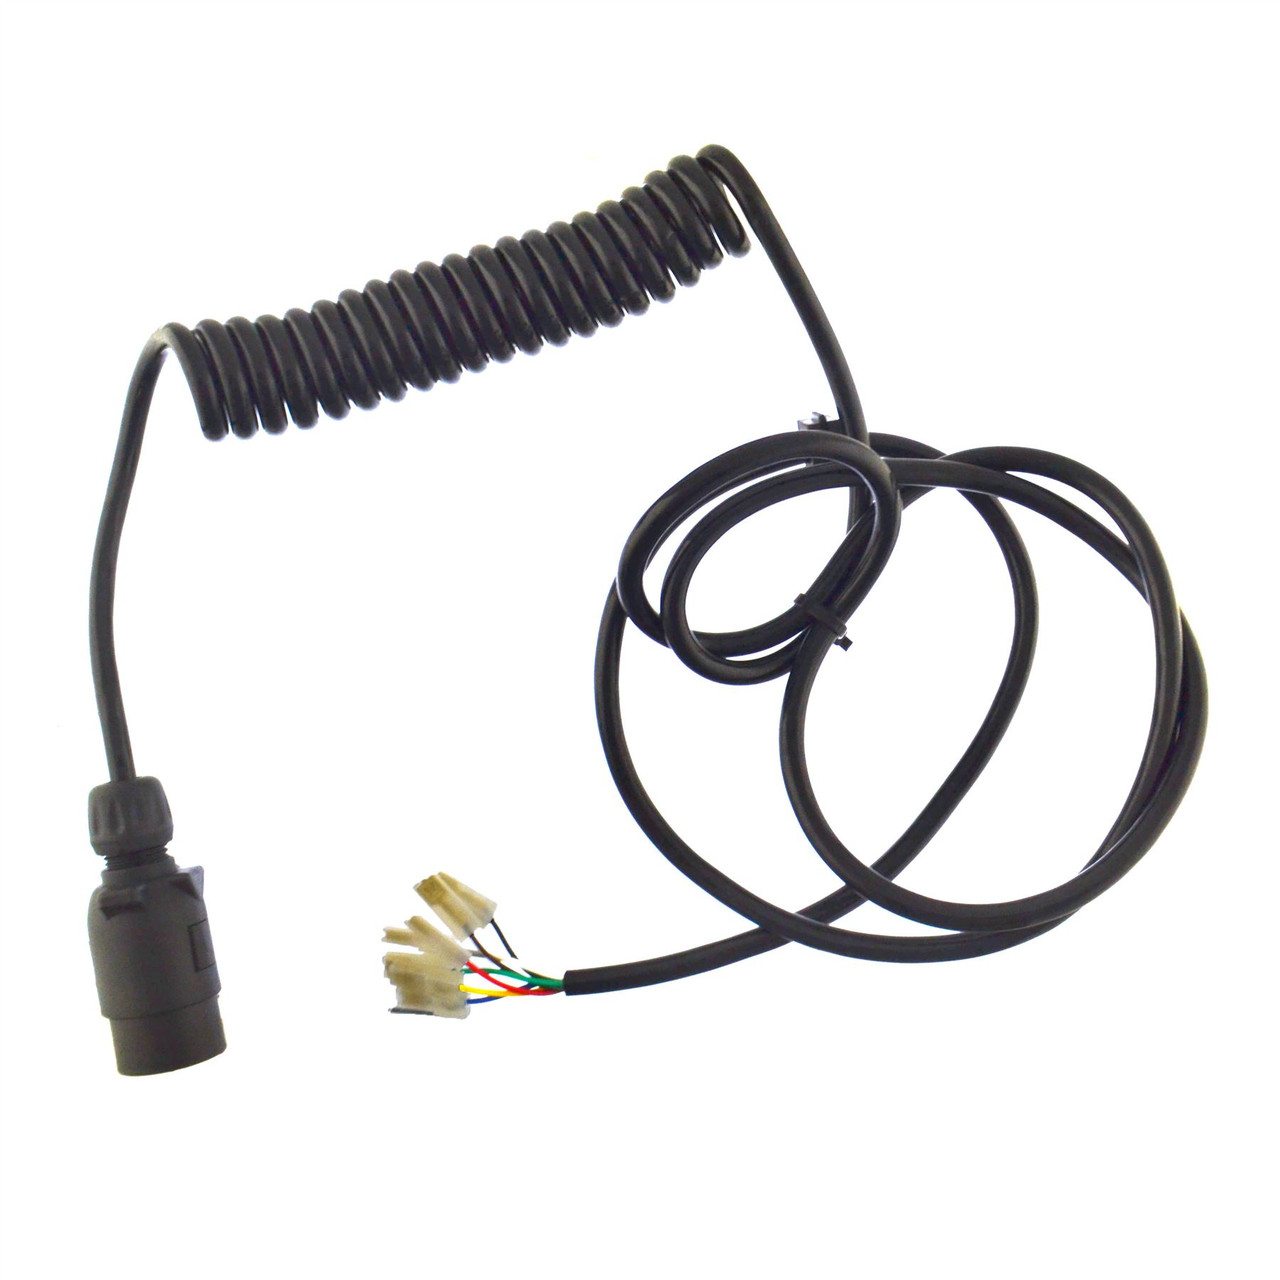 ifor williams trailer lighting cable replacement wiring harness 7pin tr220 [ 1280 x 1280 Pixel ]